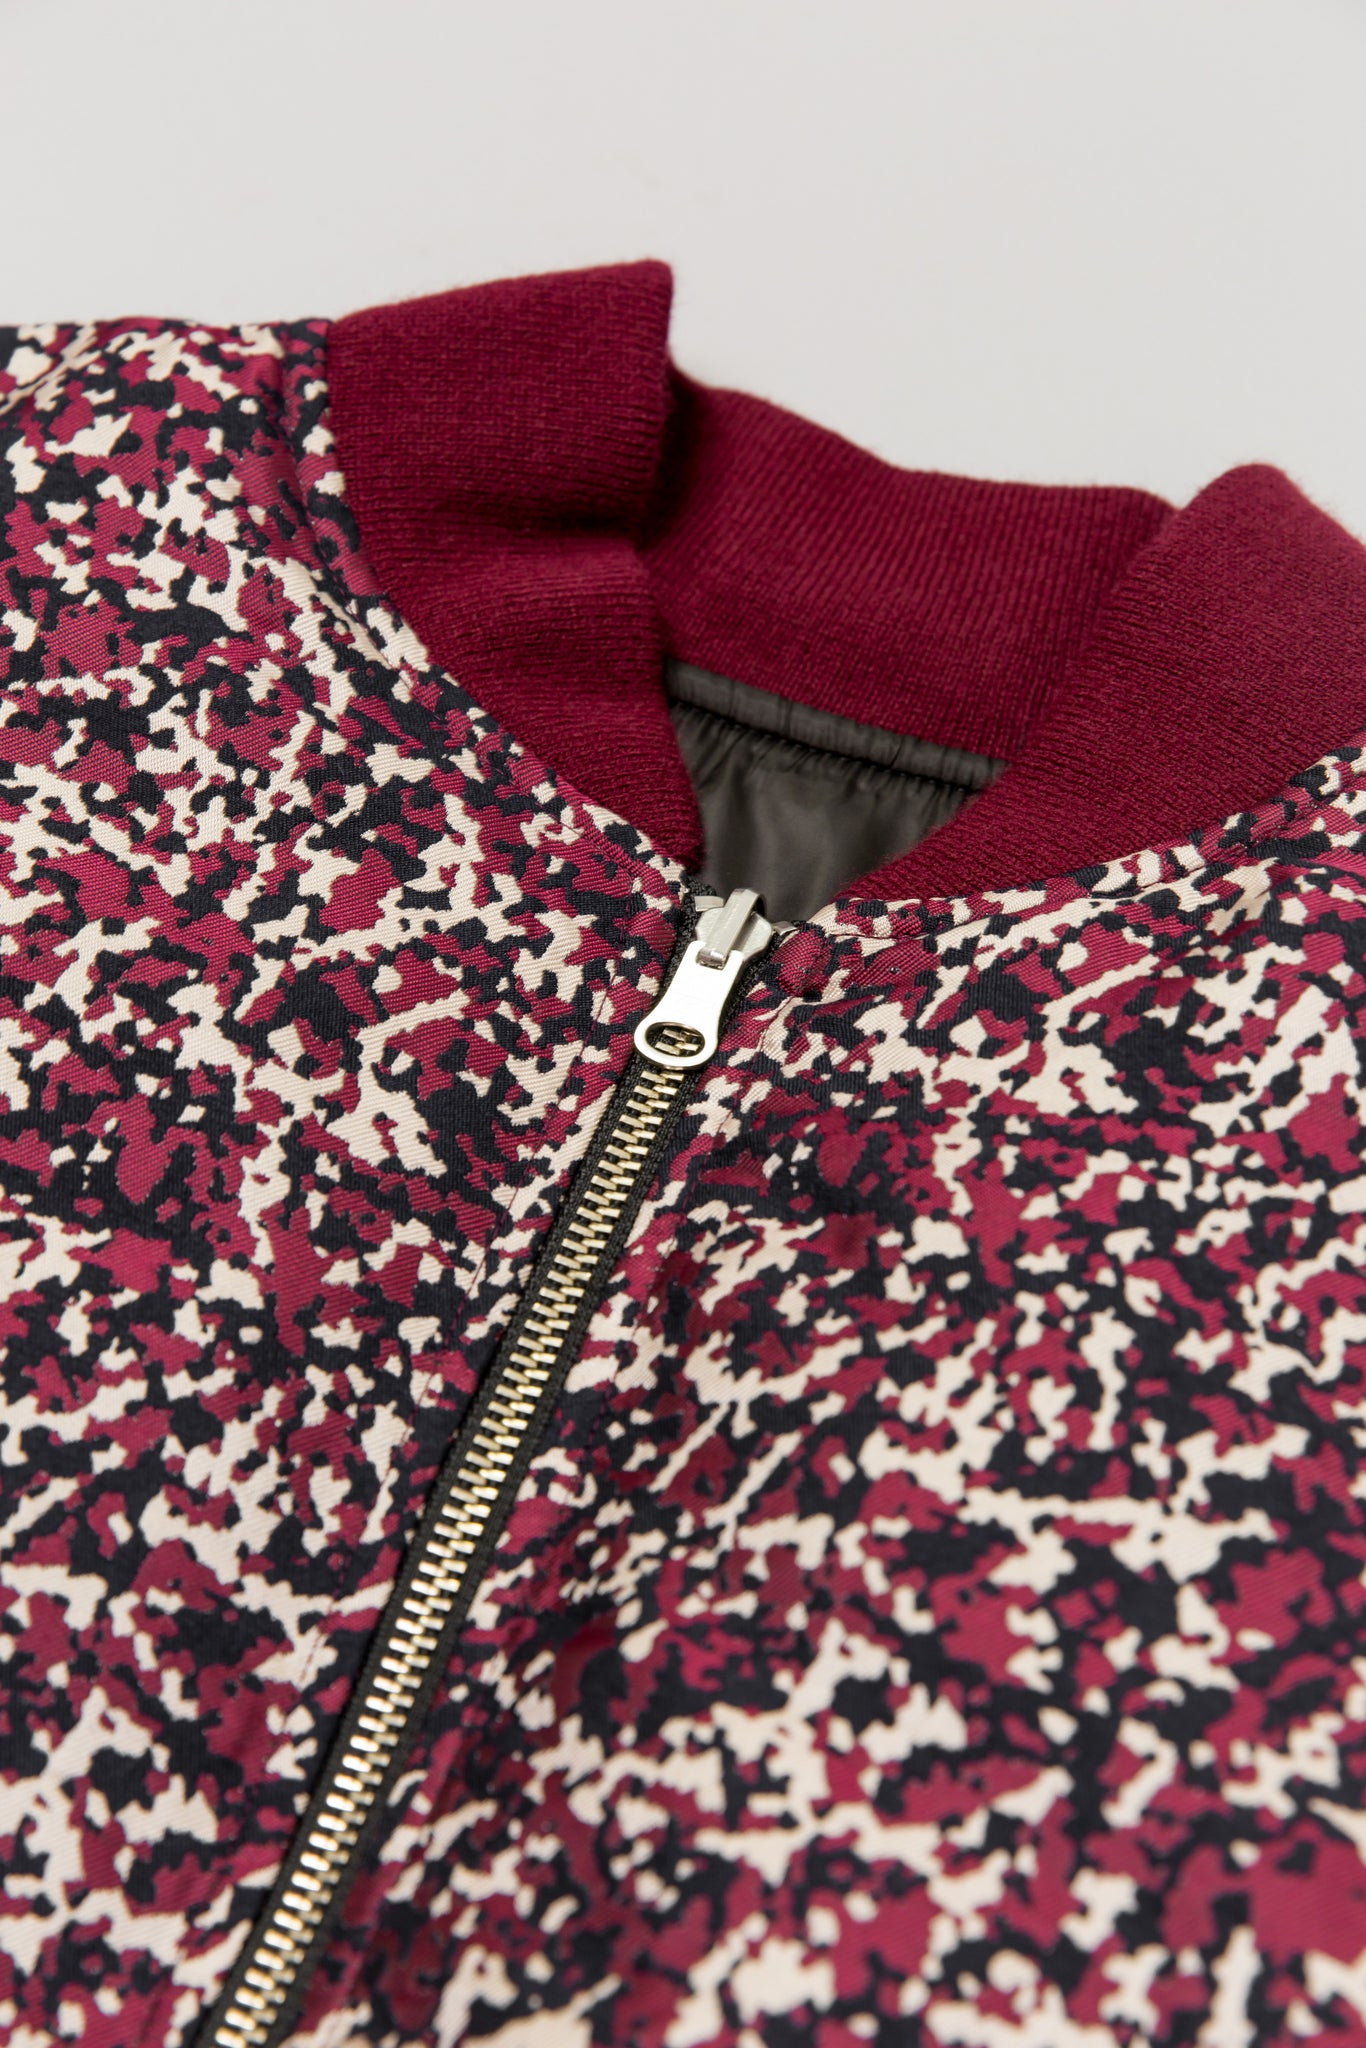 Zipper detail of Floral Public School Beve Reversible Bomber